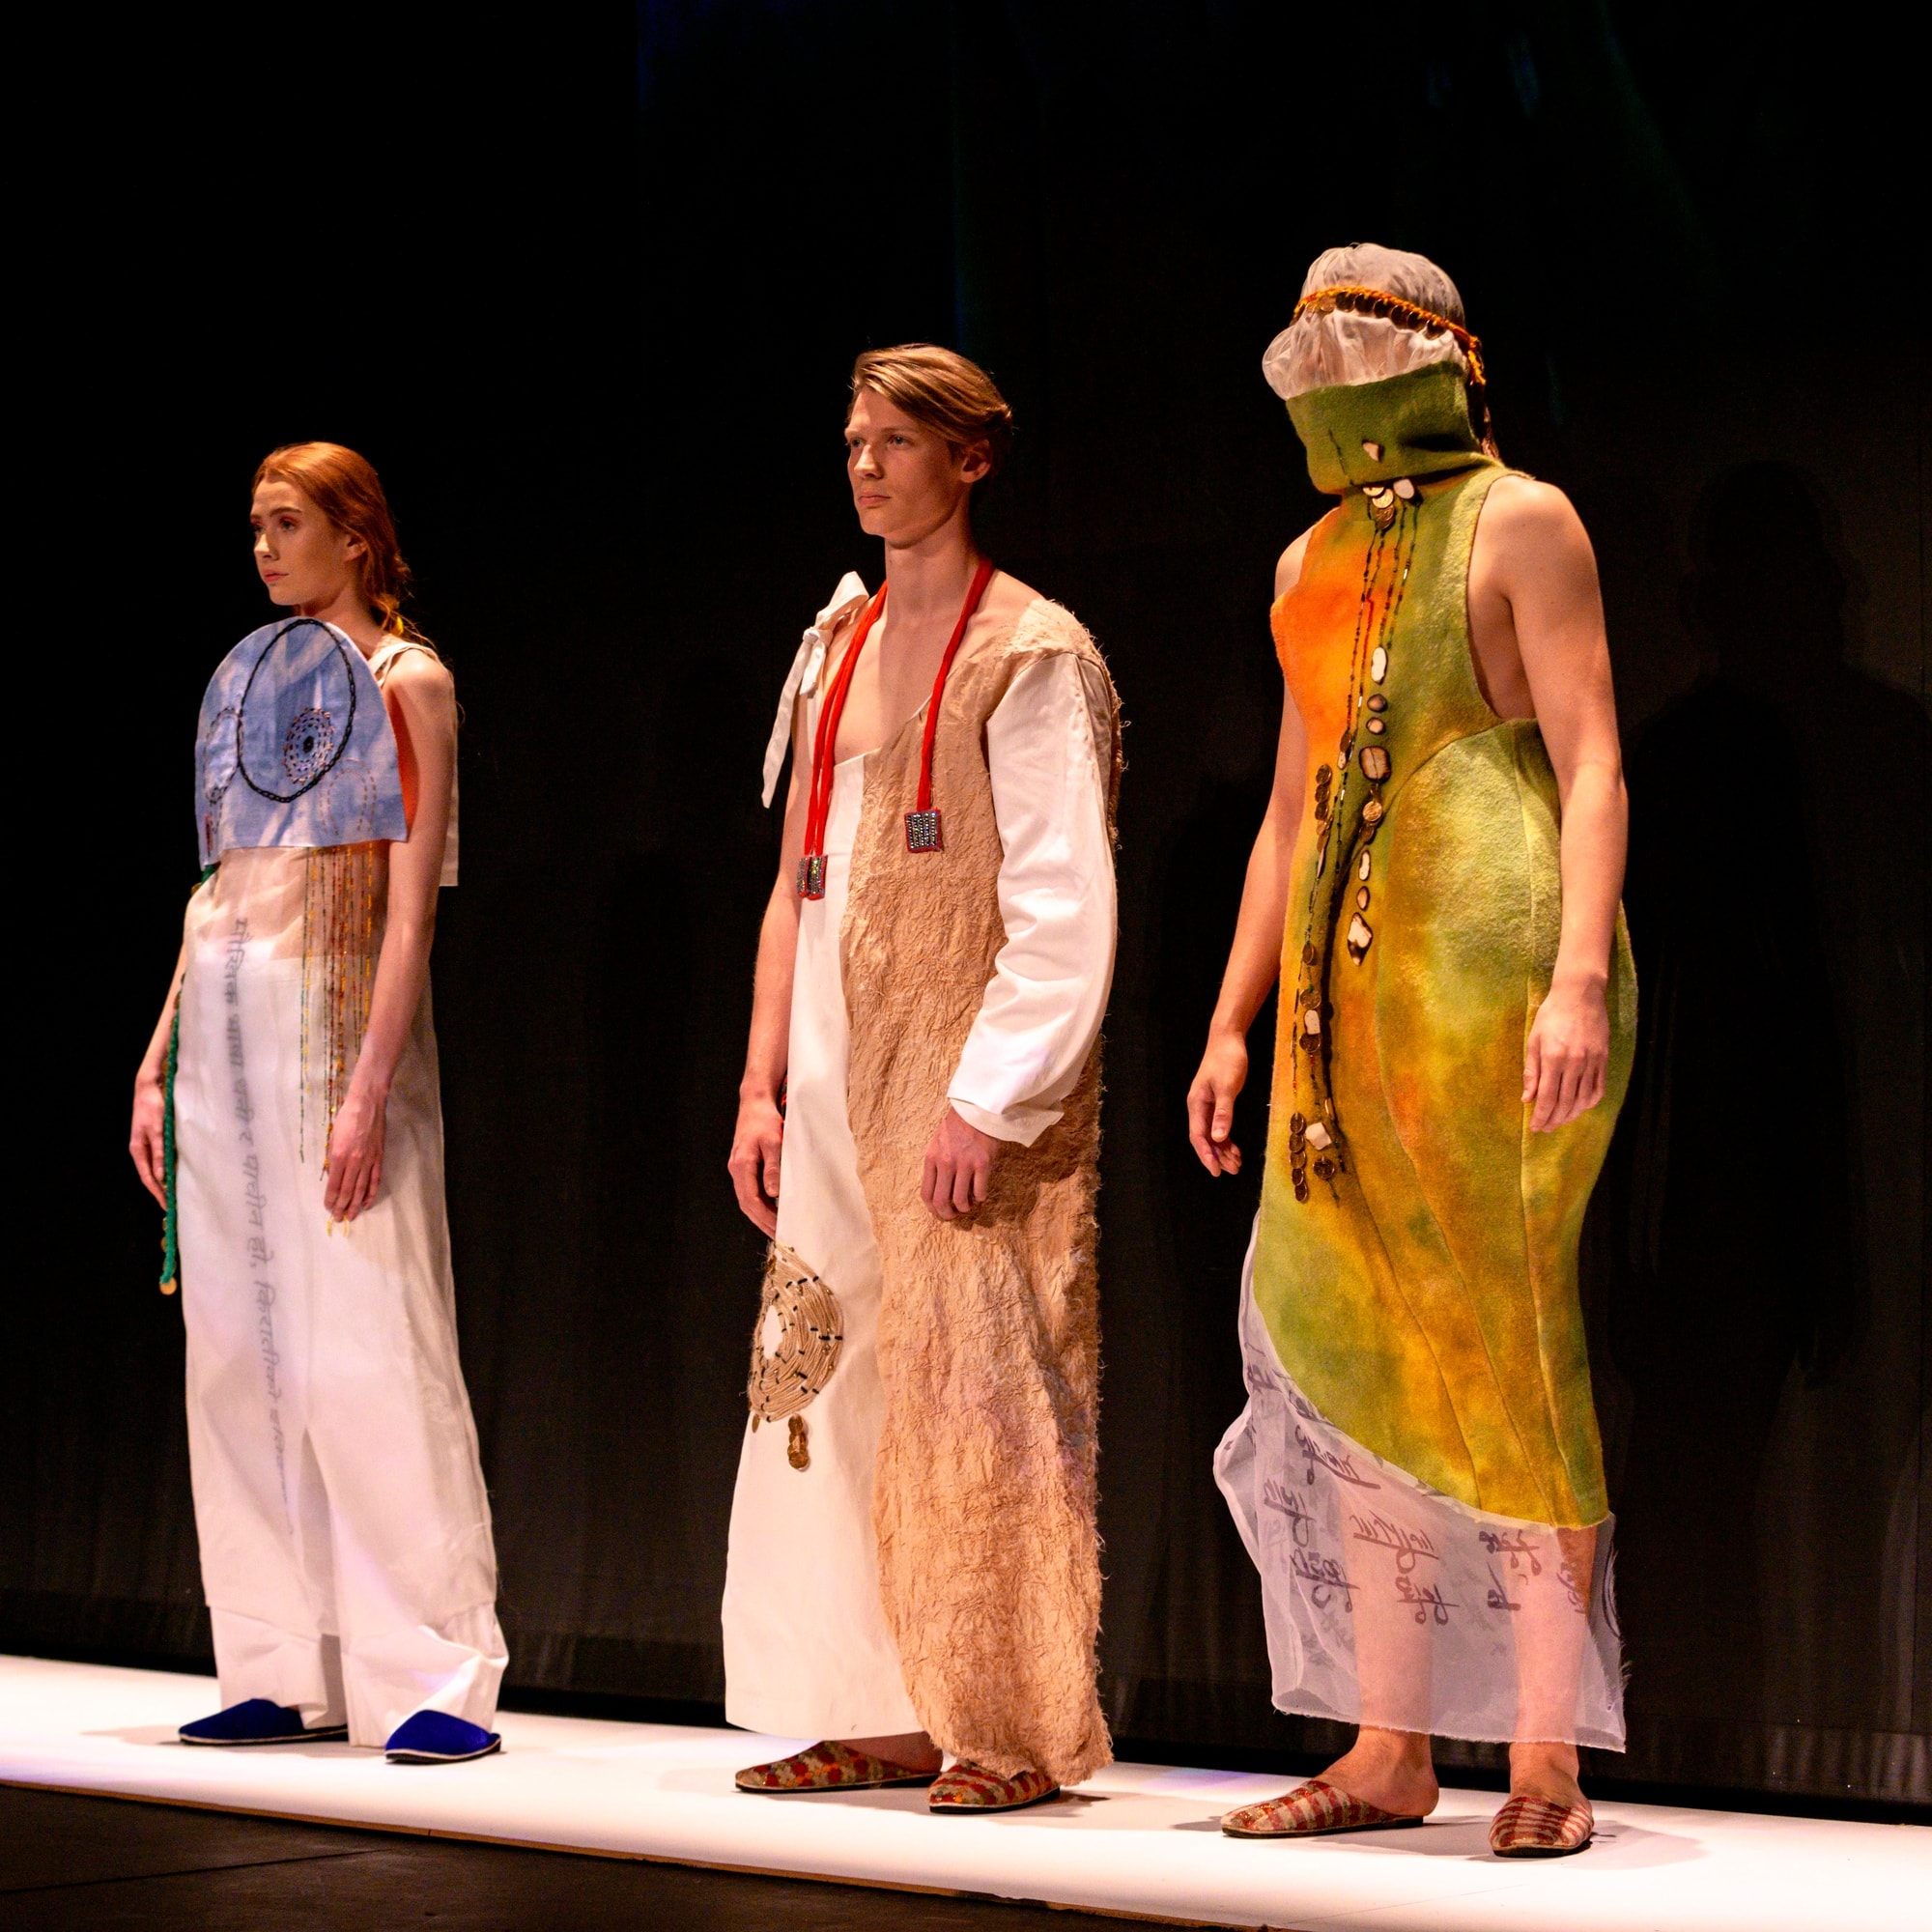 Image of 3 models on a catwalk showcasing a student's collection at the fashion show